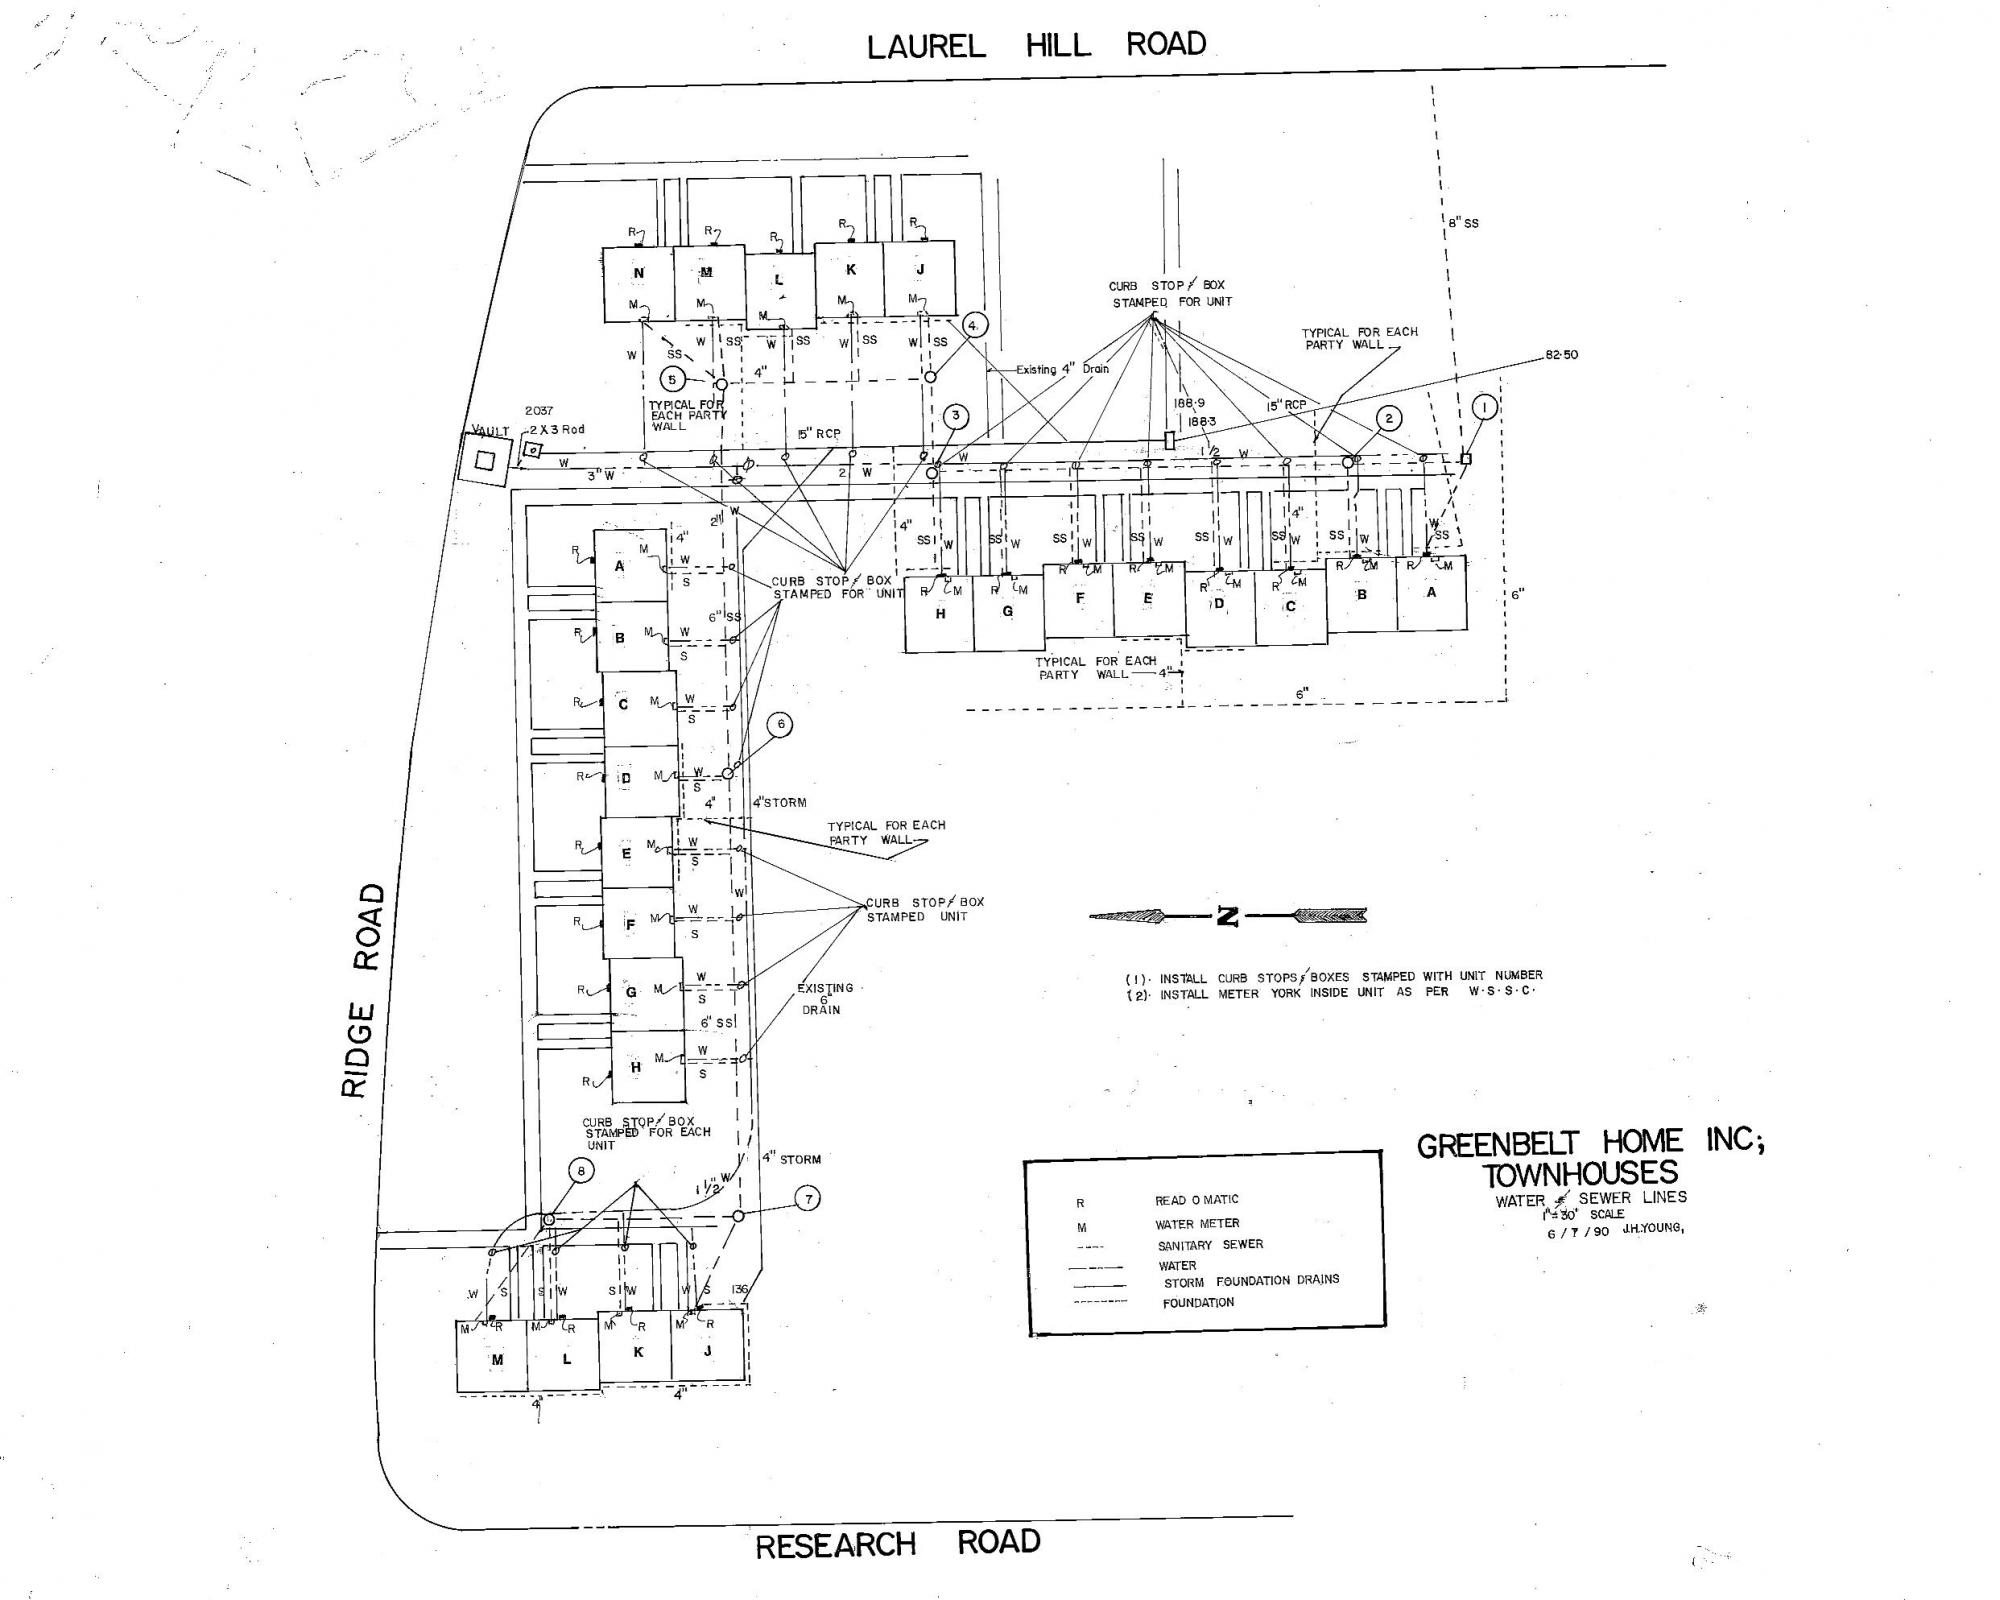 GHI Underground Utilities: Water, Sewer, Storm - Townhouses